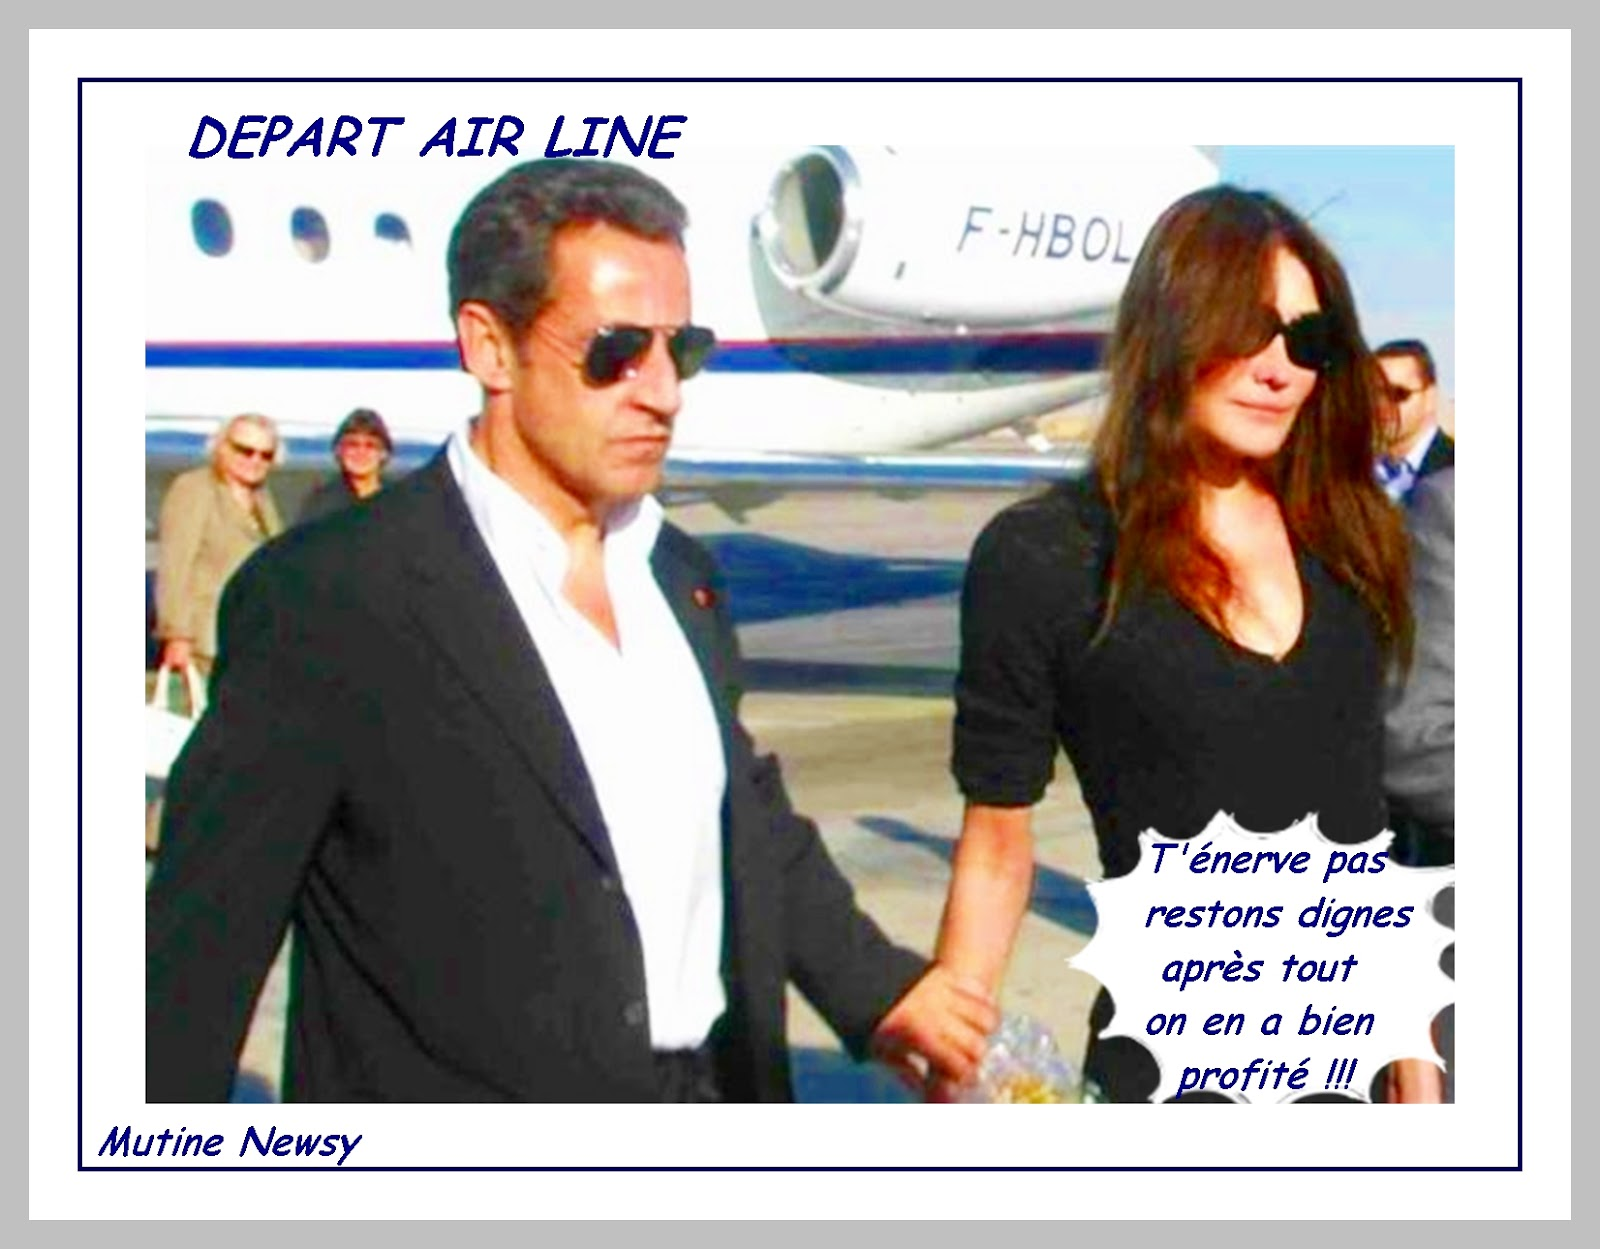 http://2.bp.blogspot.com/-OHYebVFHuaE/T5KMvGB8nKI/AAAAAAAAZJ4/Fq9r7fK-EgQ/s1600/1-french-president-nicolas-sarkozy-with-model-and-singer-carla-bruni-arrives-to-luxor-airport_167.jpg